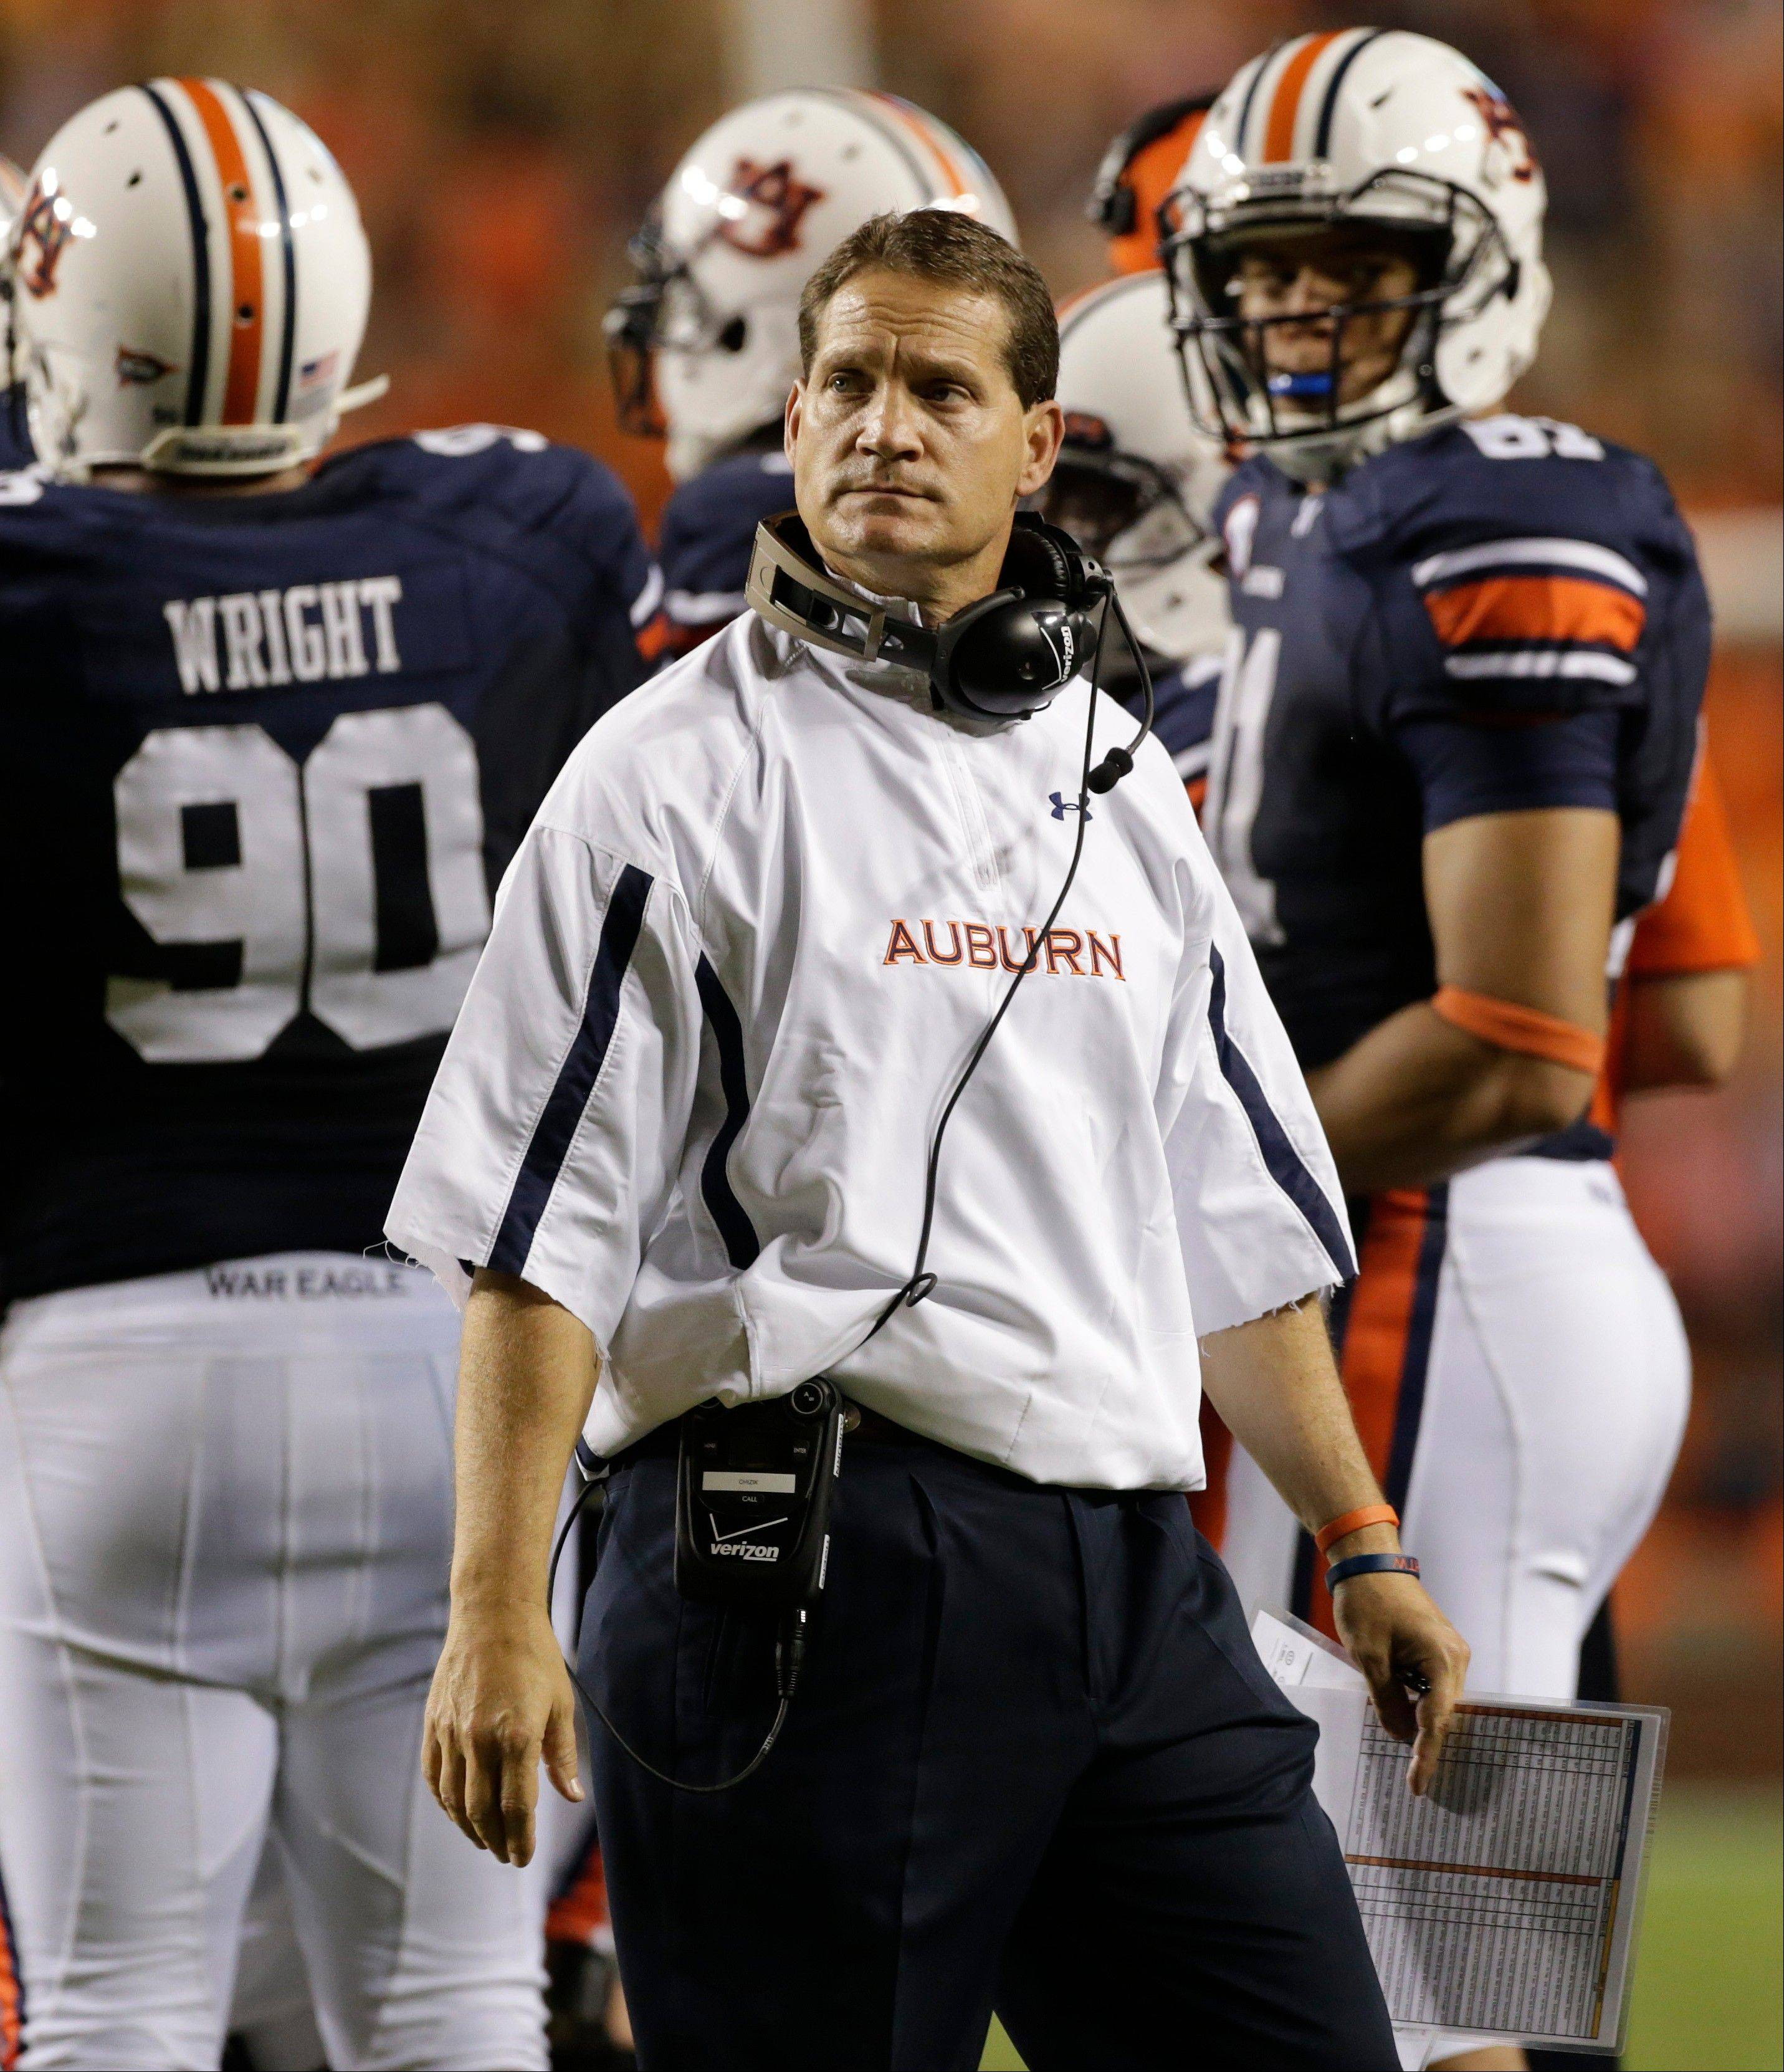 Auburn coach Gene Chizik won a national championship two years ago, but his future in in doubt with his team now 1-6 this season.